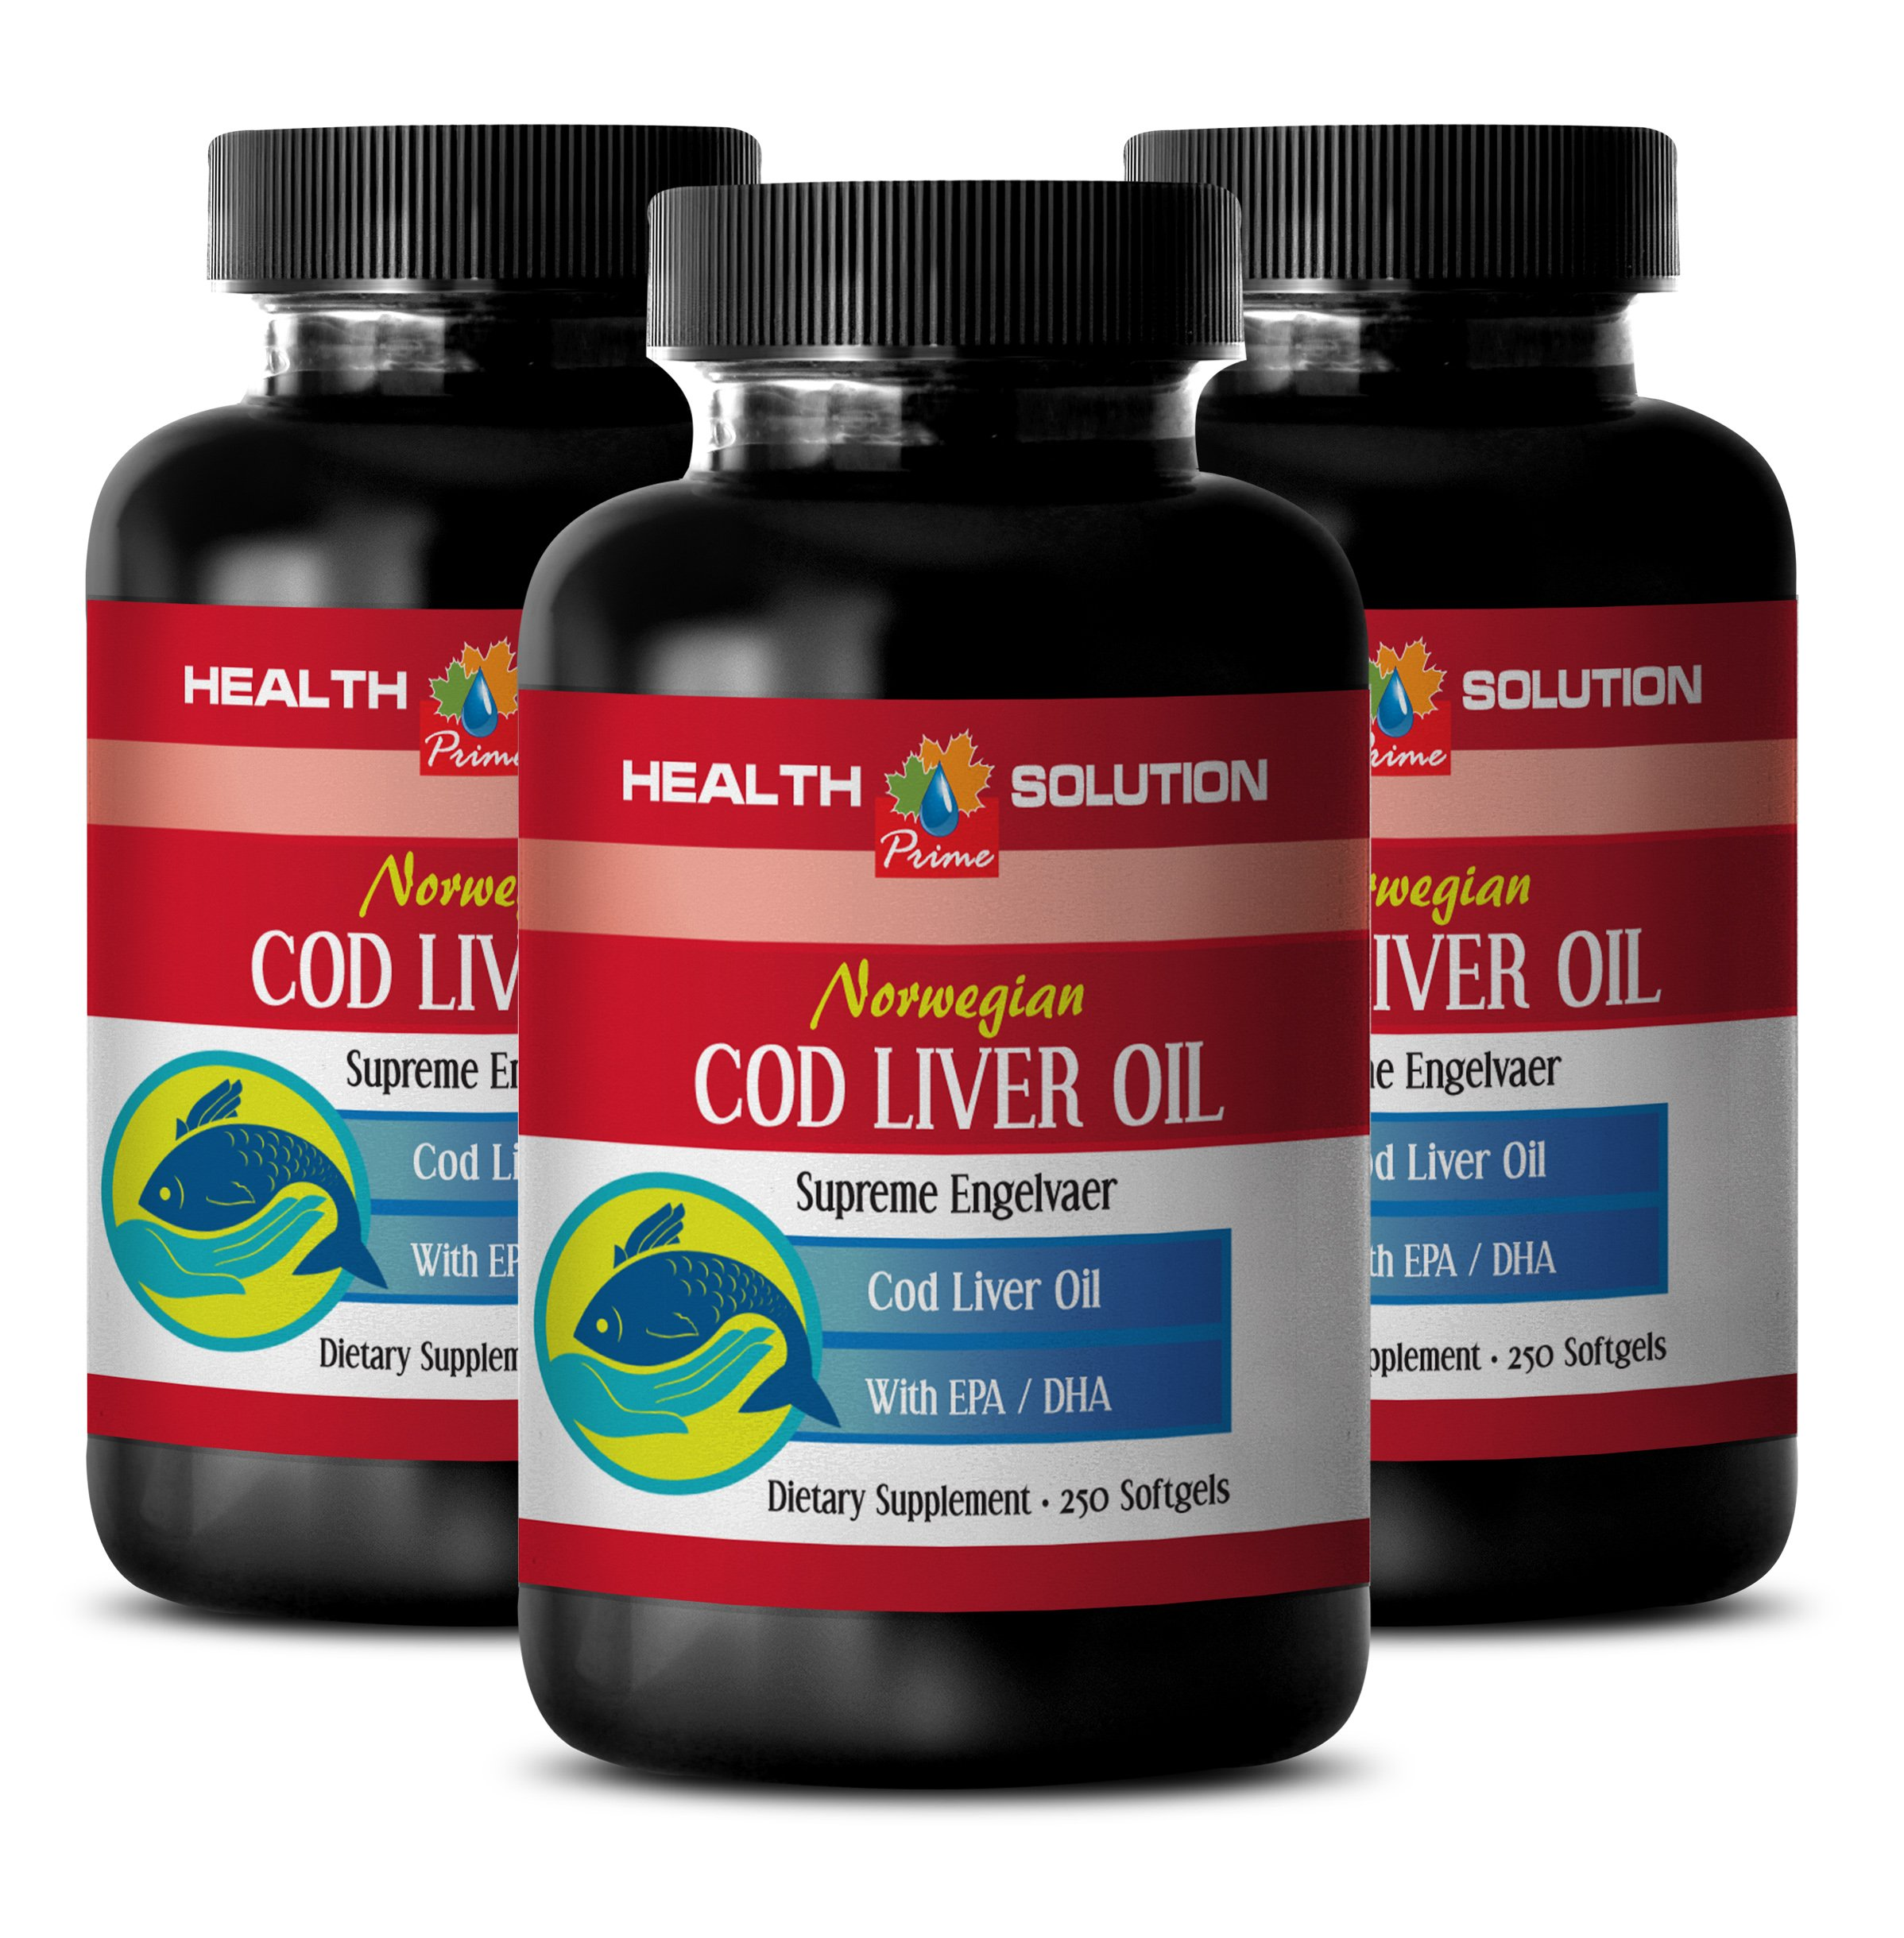 Digestive aid supplements - NORWEGIAN COD LIVER OIL with Vitamins A & D3/EPA & DHA - Norwegian cod liver oil softgels - 3 Bottles 750 Softgels